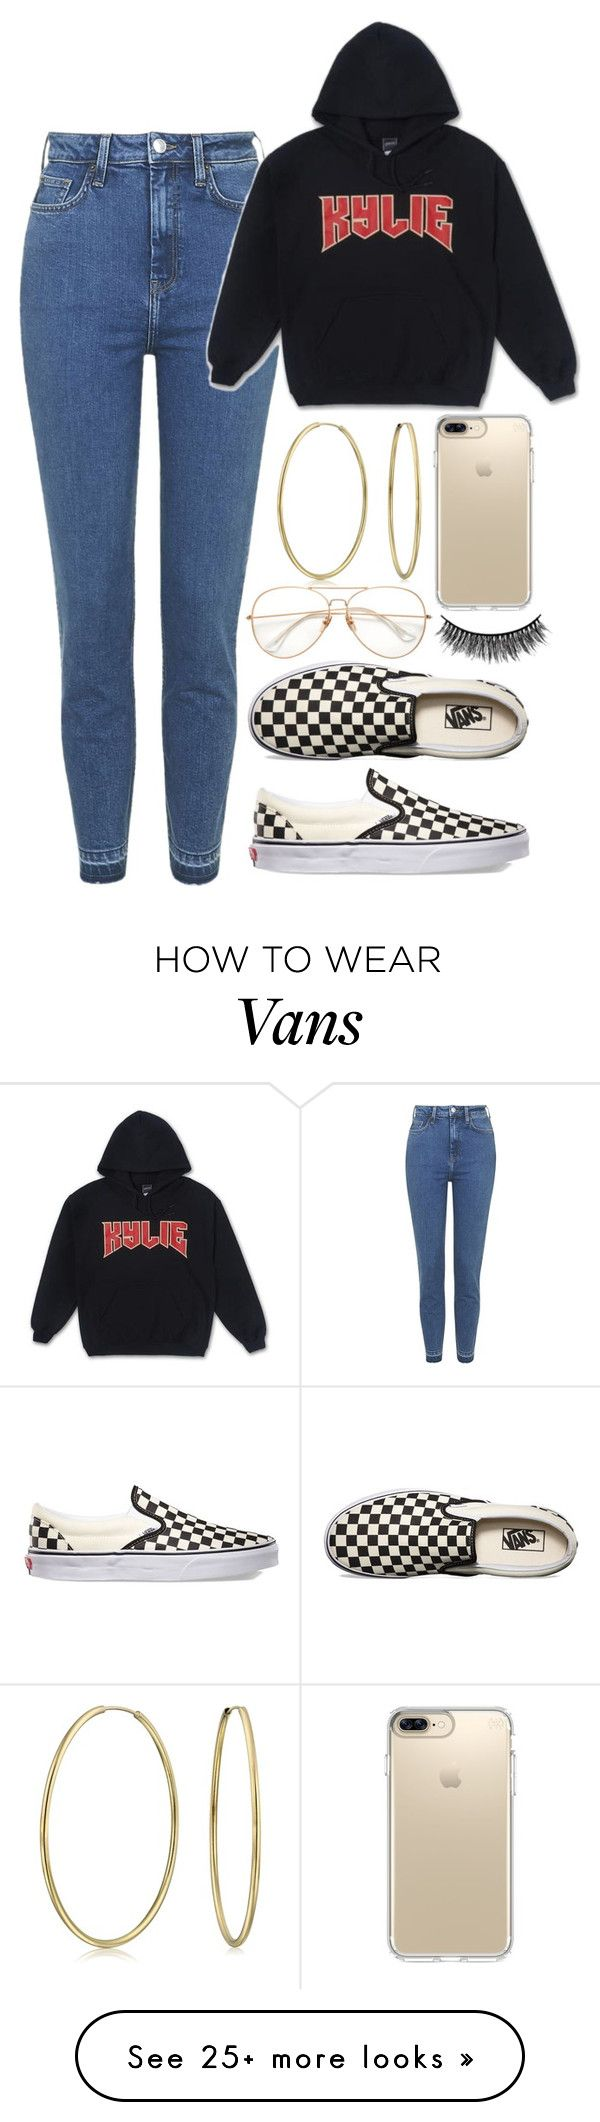 """Untitled #492"" by kristinacason on Polyvore featuring Topshop, Vans, Speck, Bling Jewelry and Battington"